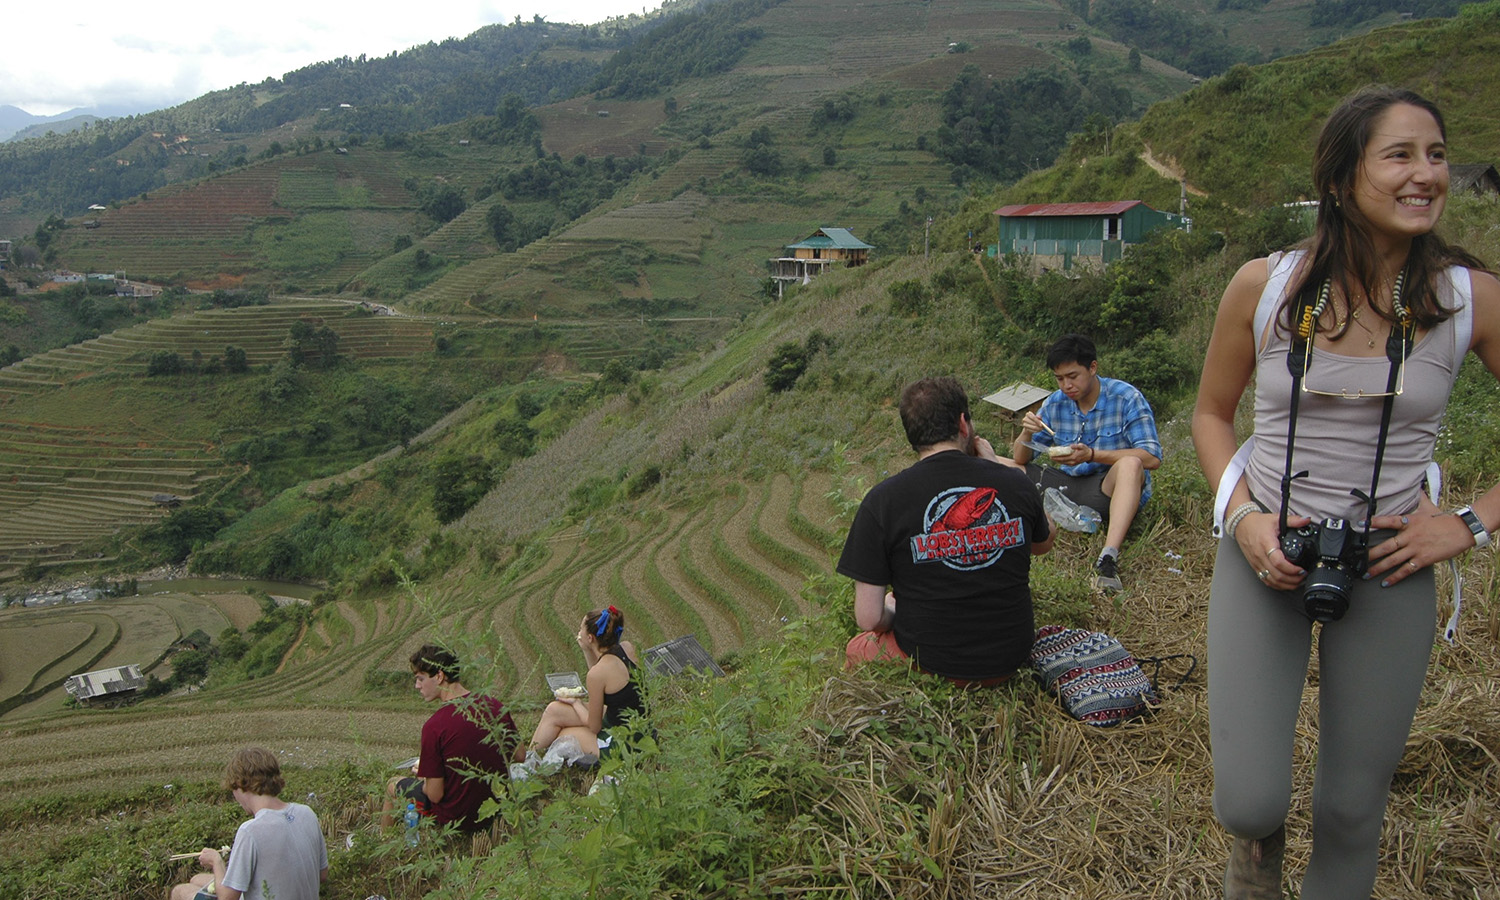 Alyssa Cupano '21 captures Gianna DeVita '21 (right) and fellow students as they take a break while hiking the mountains of Sapa in Vietnam.